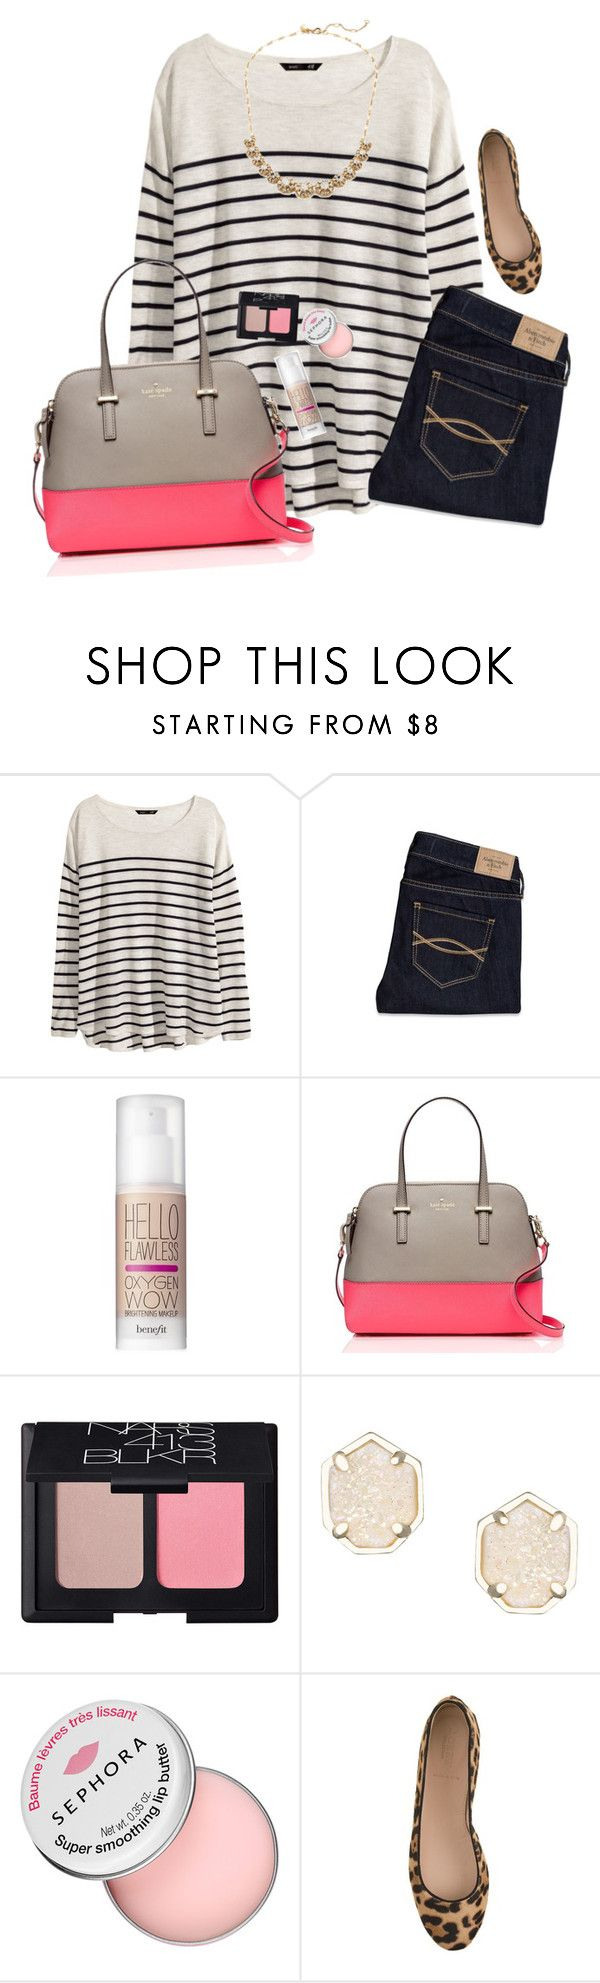 """""""Trouble... Trouble... She is trouble"""" by graciegerhart7 ❤ liked on Polyvore featuring H&M, Abercrombie & Fitch, Benefit, Kate Spade, NARS Cosmetics, Kendra Scott, Sephora Collection, J.Crew, women's clothing and women"""